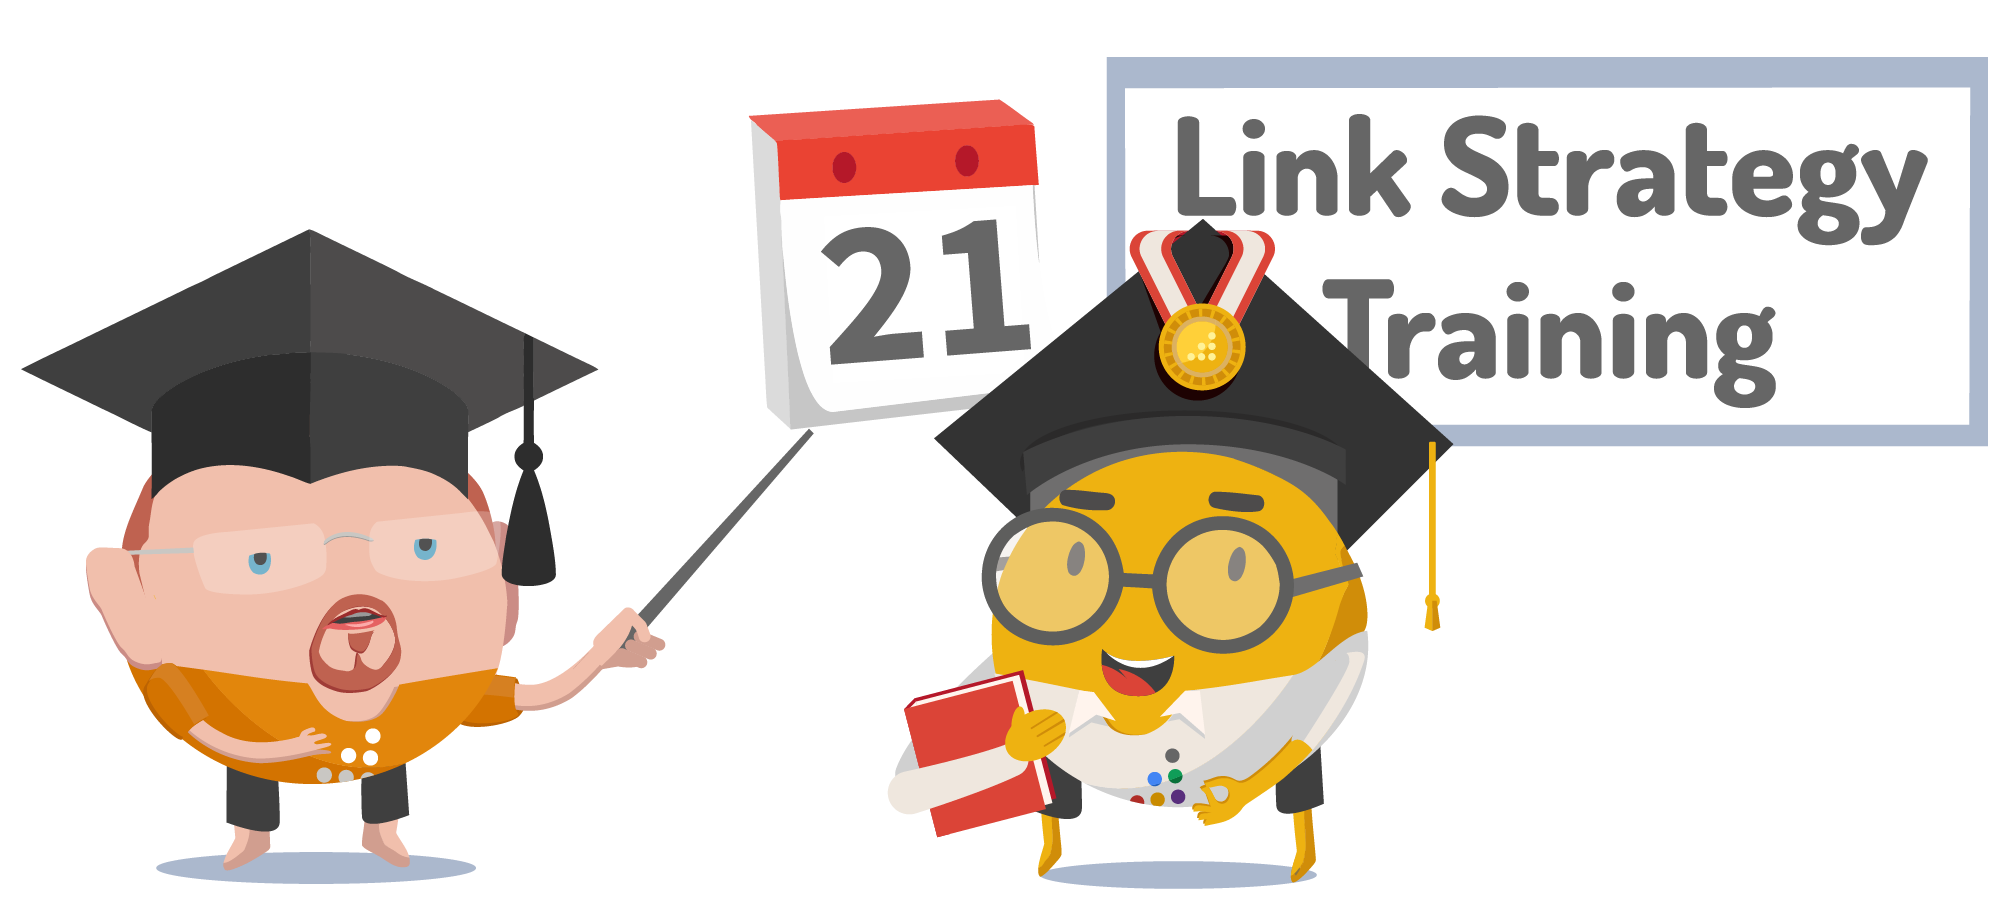 day link building. Intelligent clipart training needs analysis